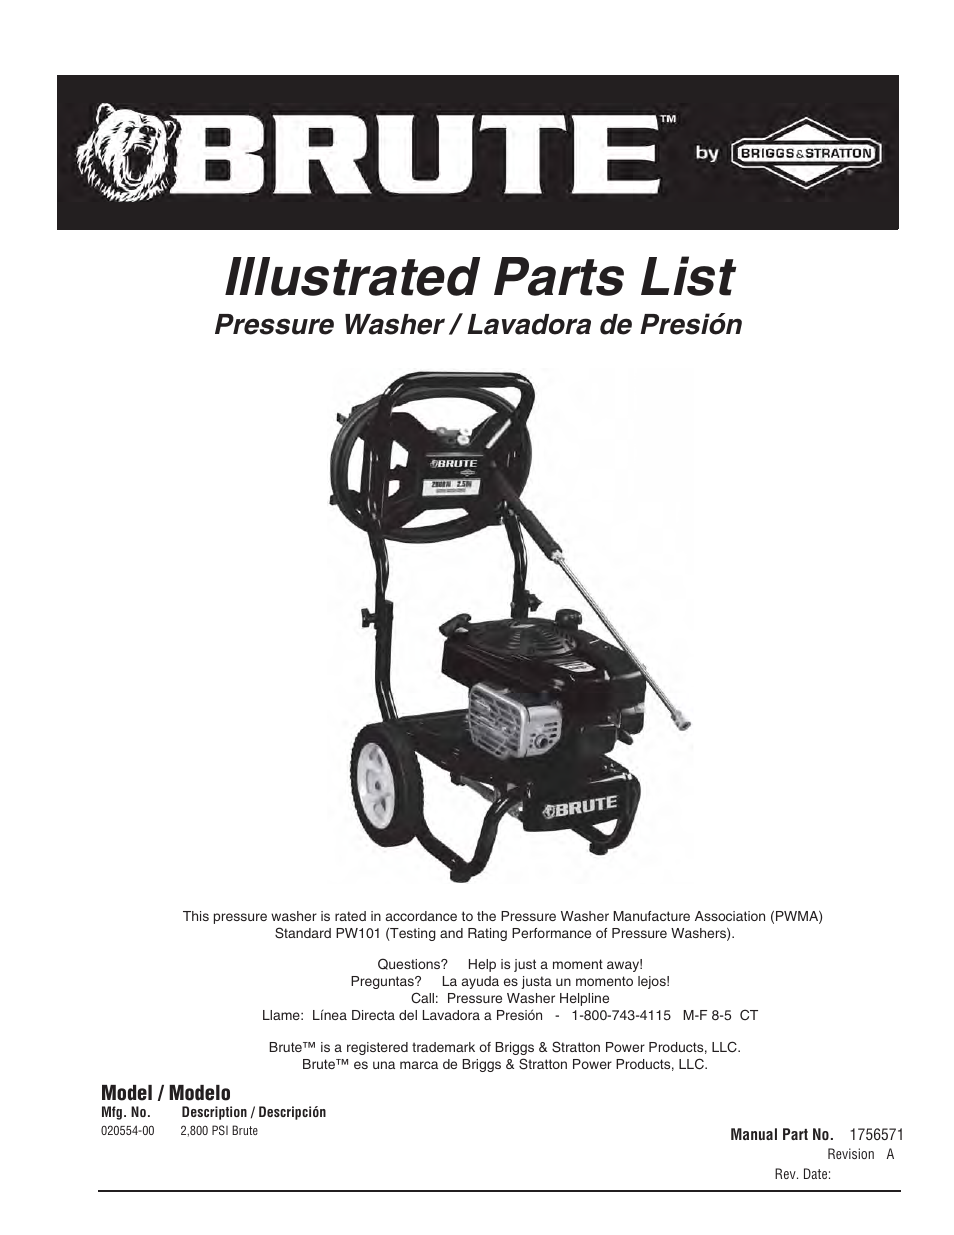 brute 2800 psi pressure washer user manual